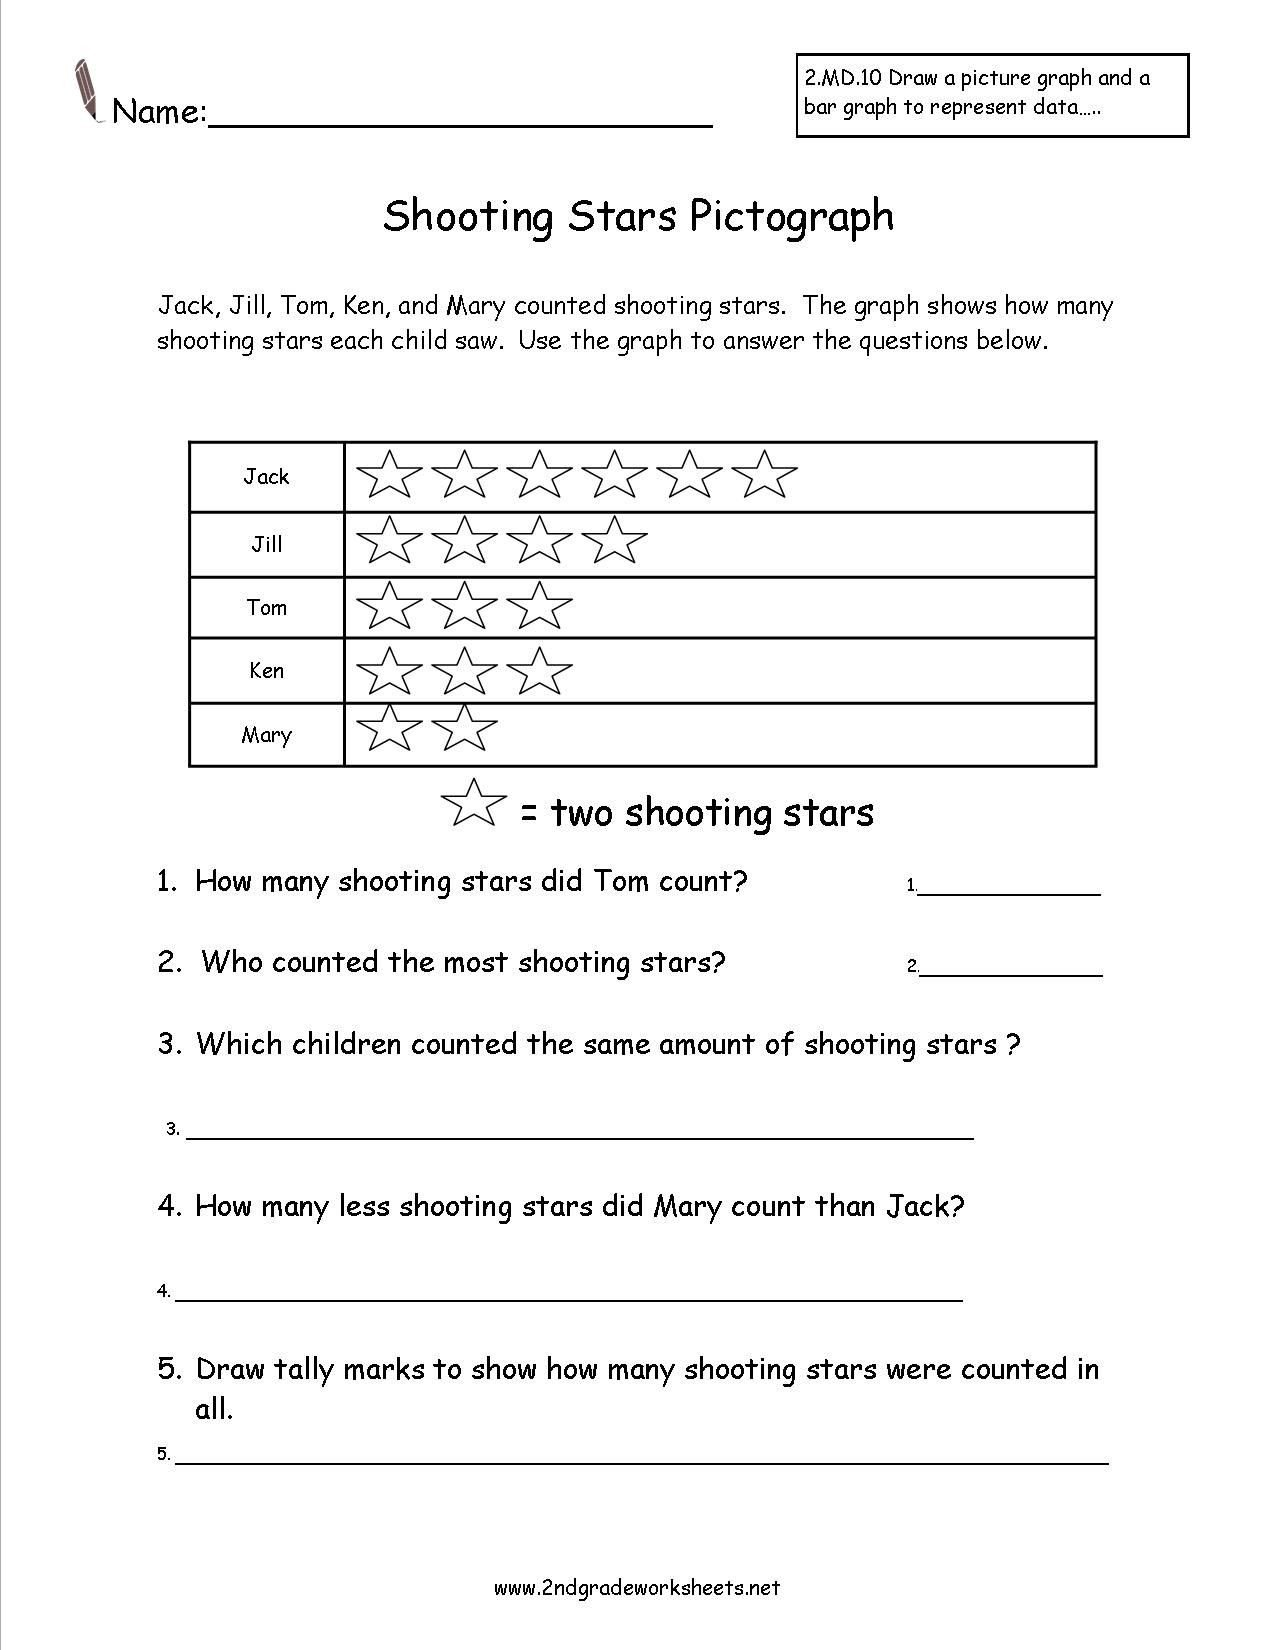 Reading Graphs Worksheets Middle School Shooting Stars Pictograph Worksheet